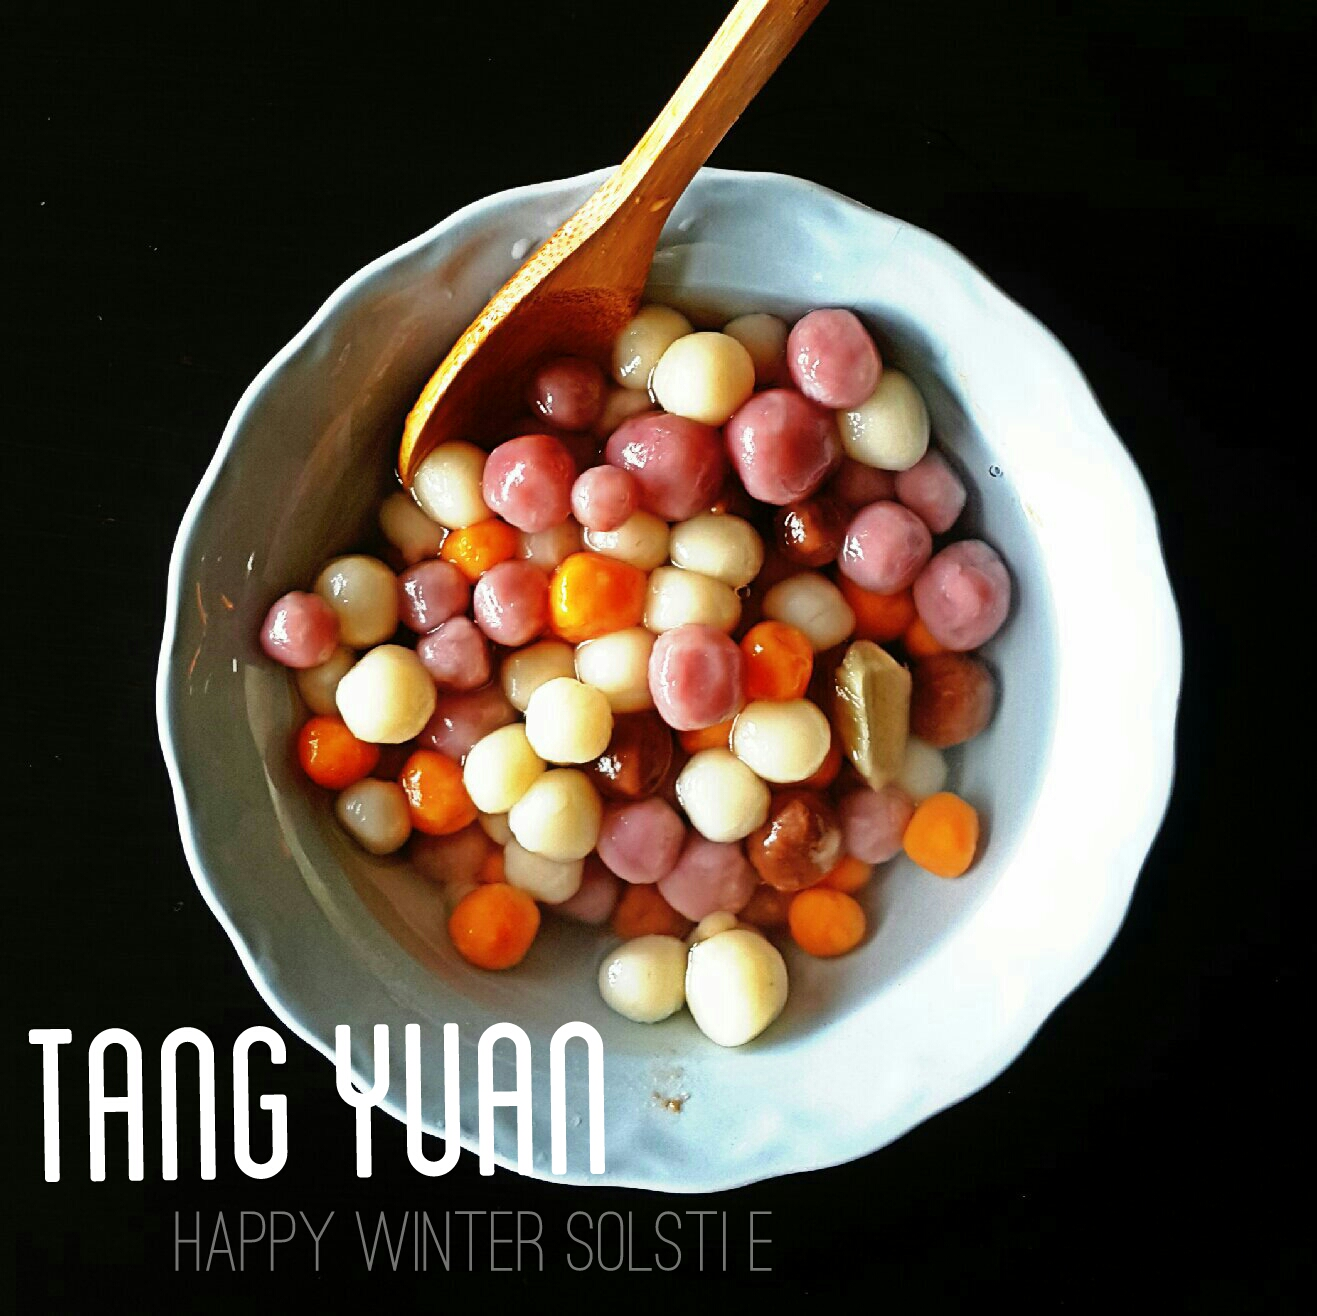 Cute Shaped Tang Yuan - Plain Glutinous Rice Balls in Ginger Syrup.